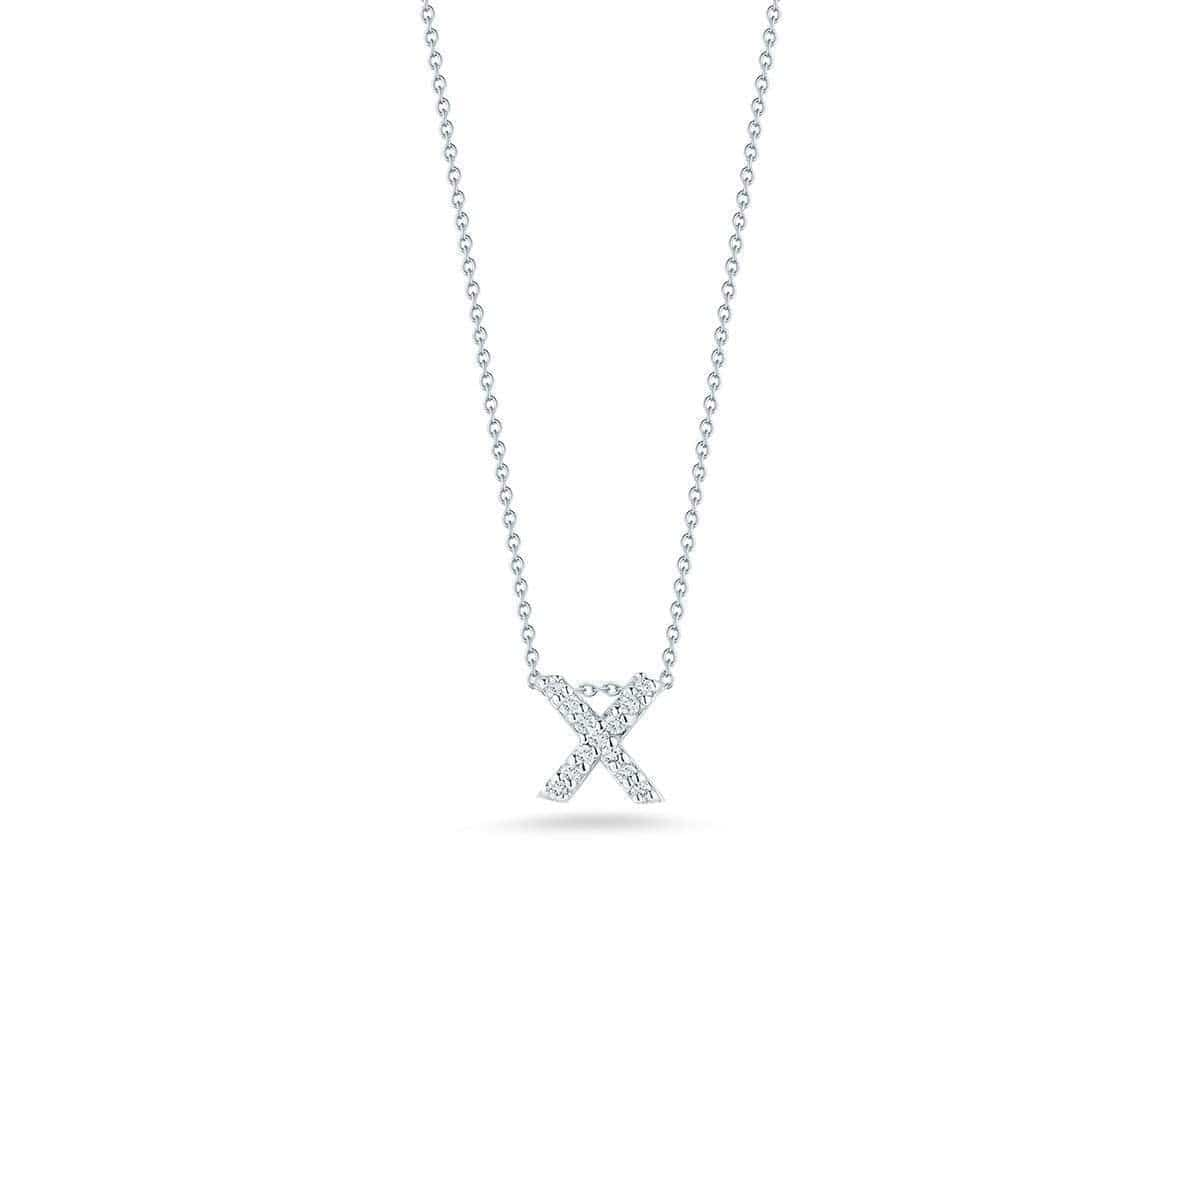 18k White Gold & Diamond Love Letter X Necklace - 001634AWCHXX-Roberto Coin-Renee Taylor Gallery